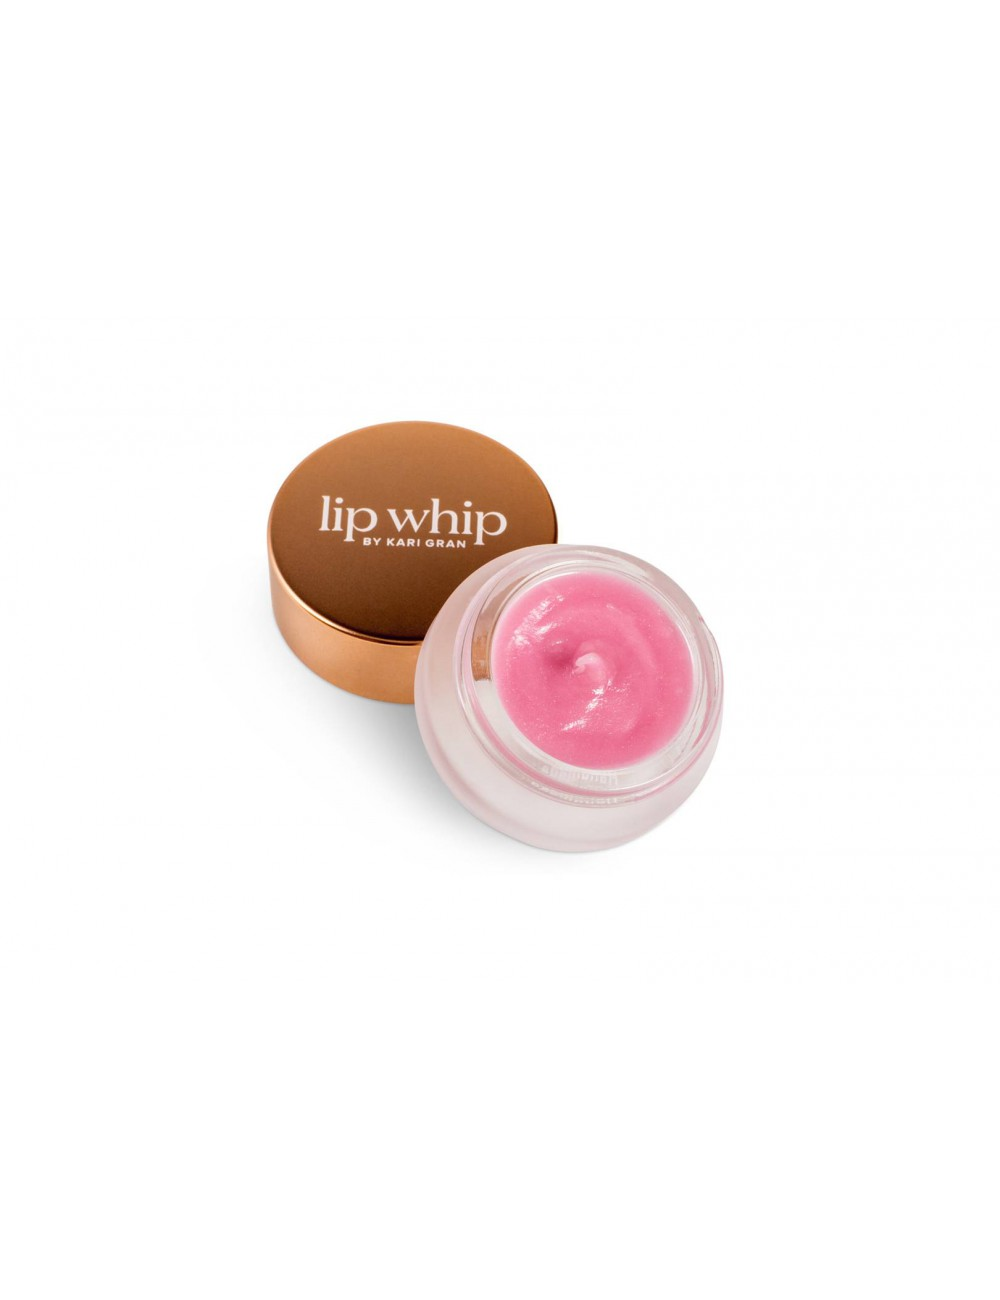 KARI GRAN lip whip 7ml-Peppermint tinted